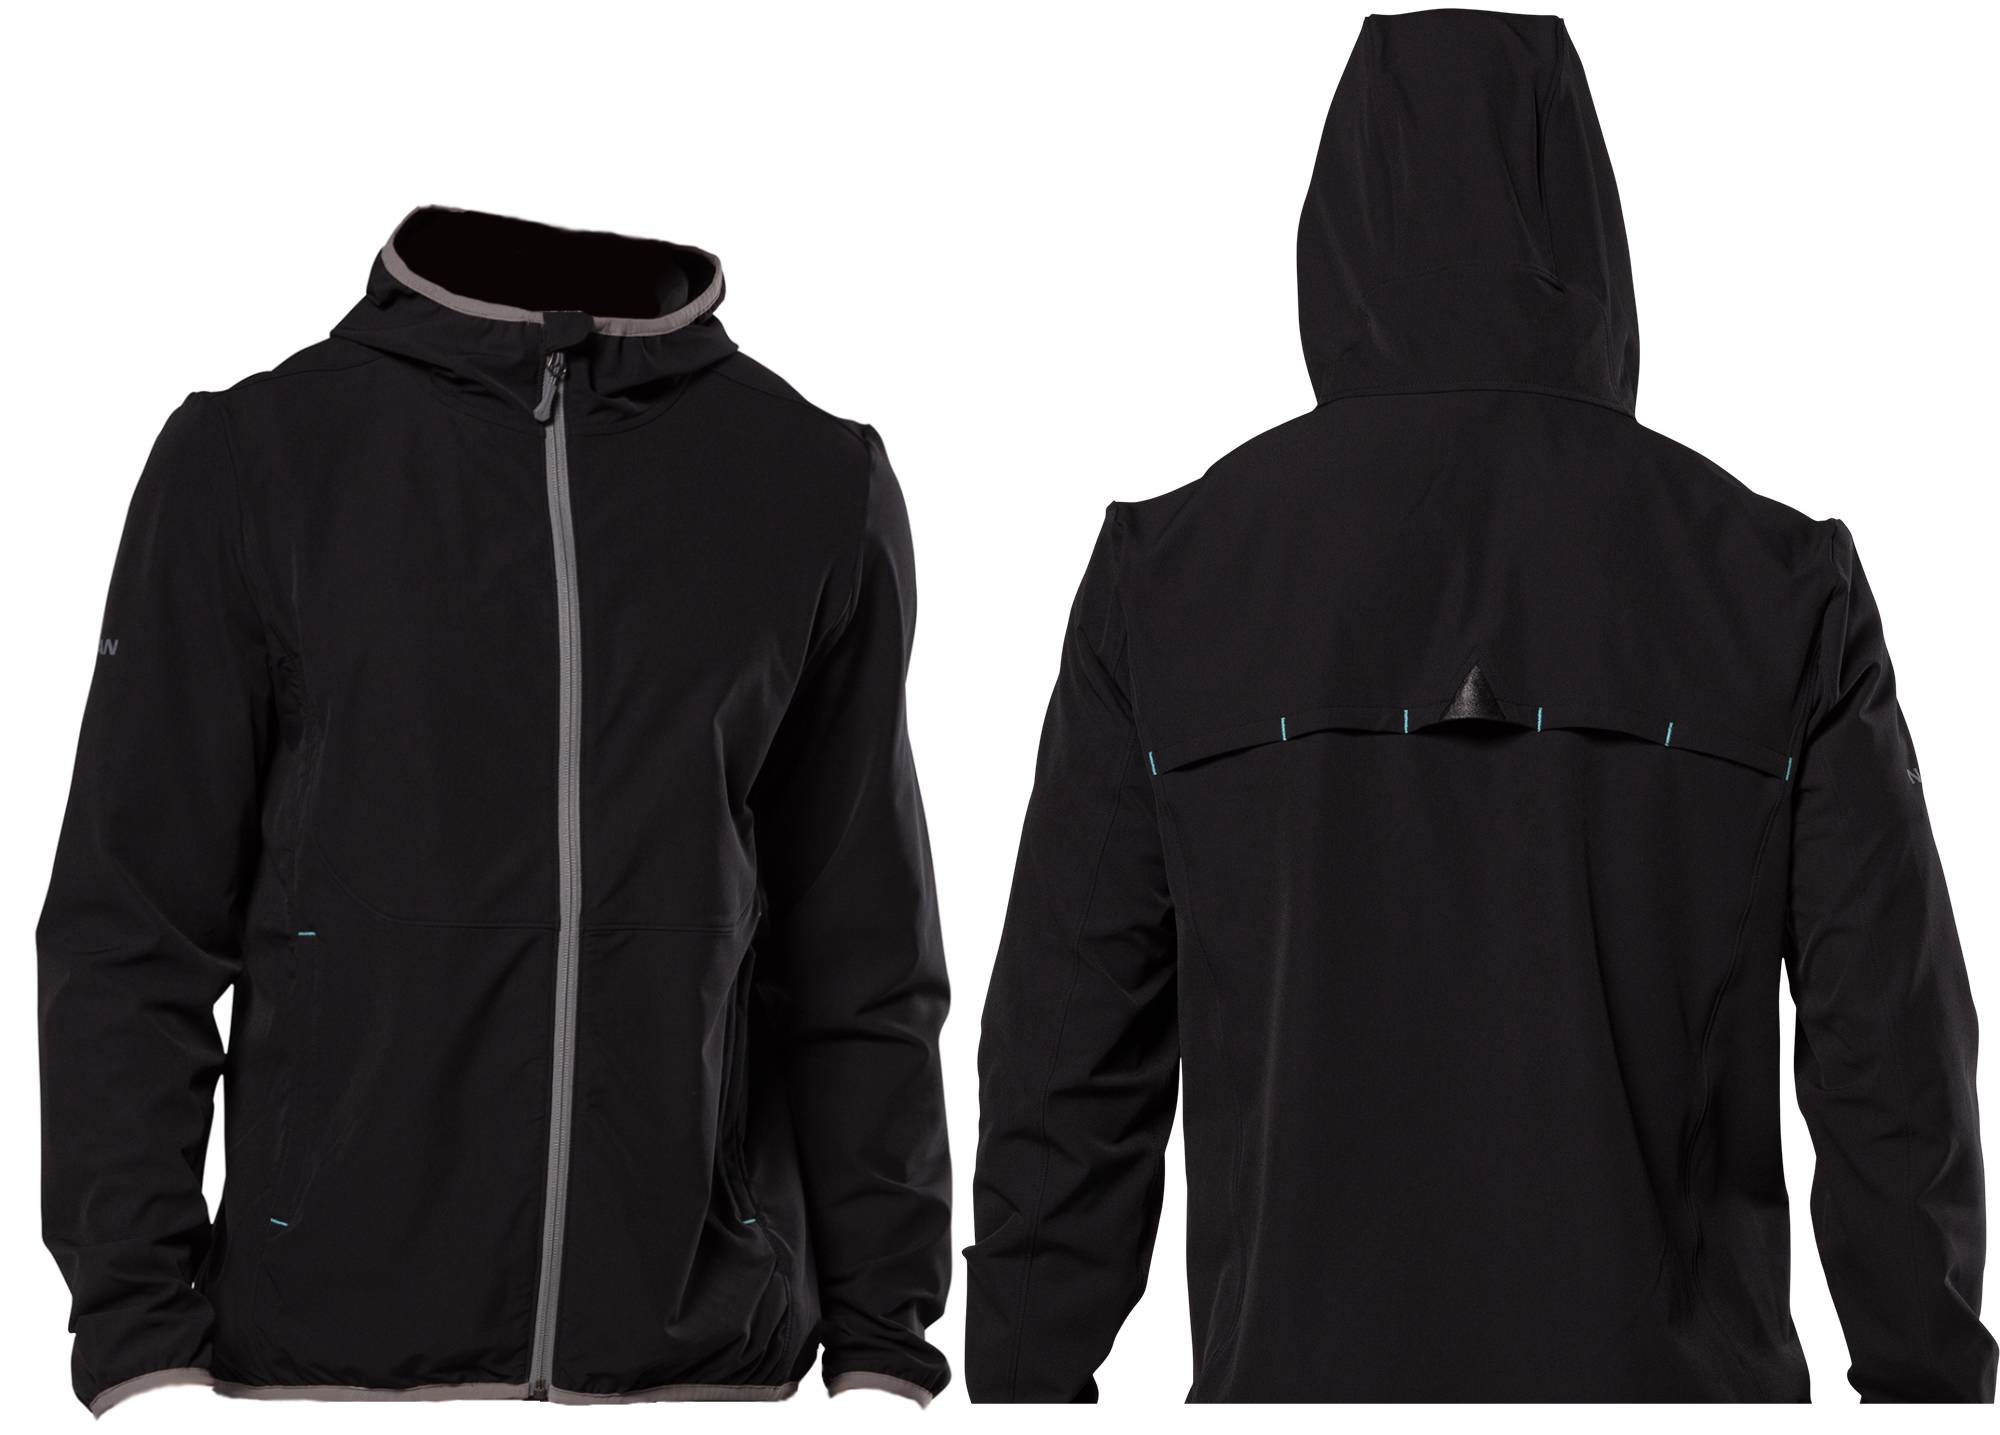 Nathan men's tour jacket front and back with hood in black against white background